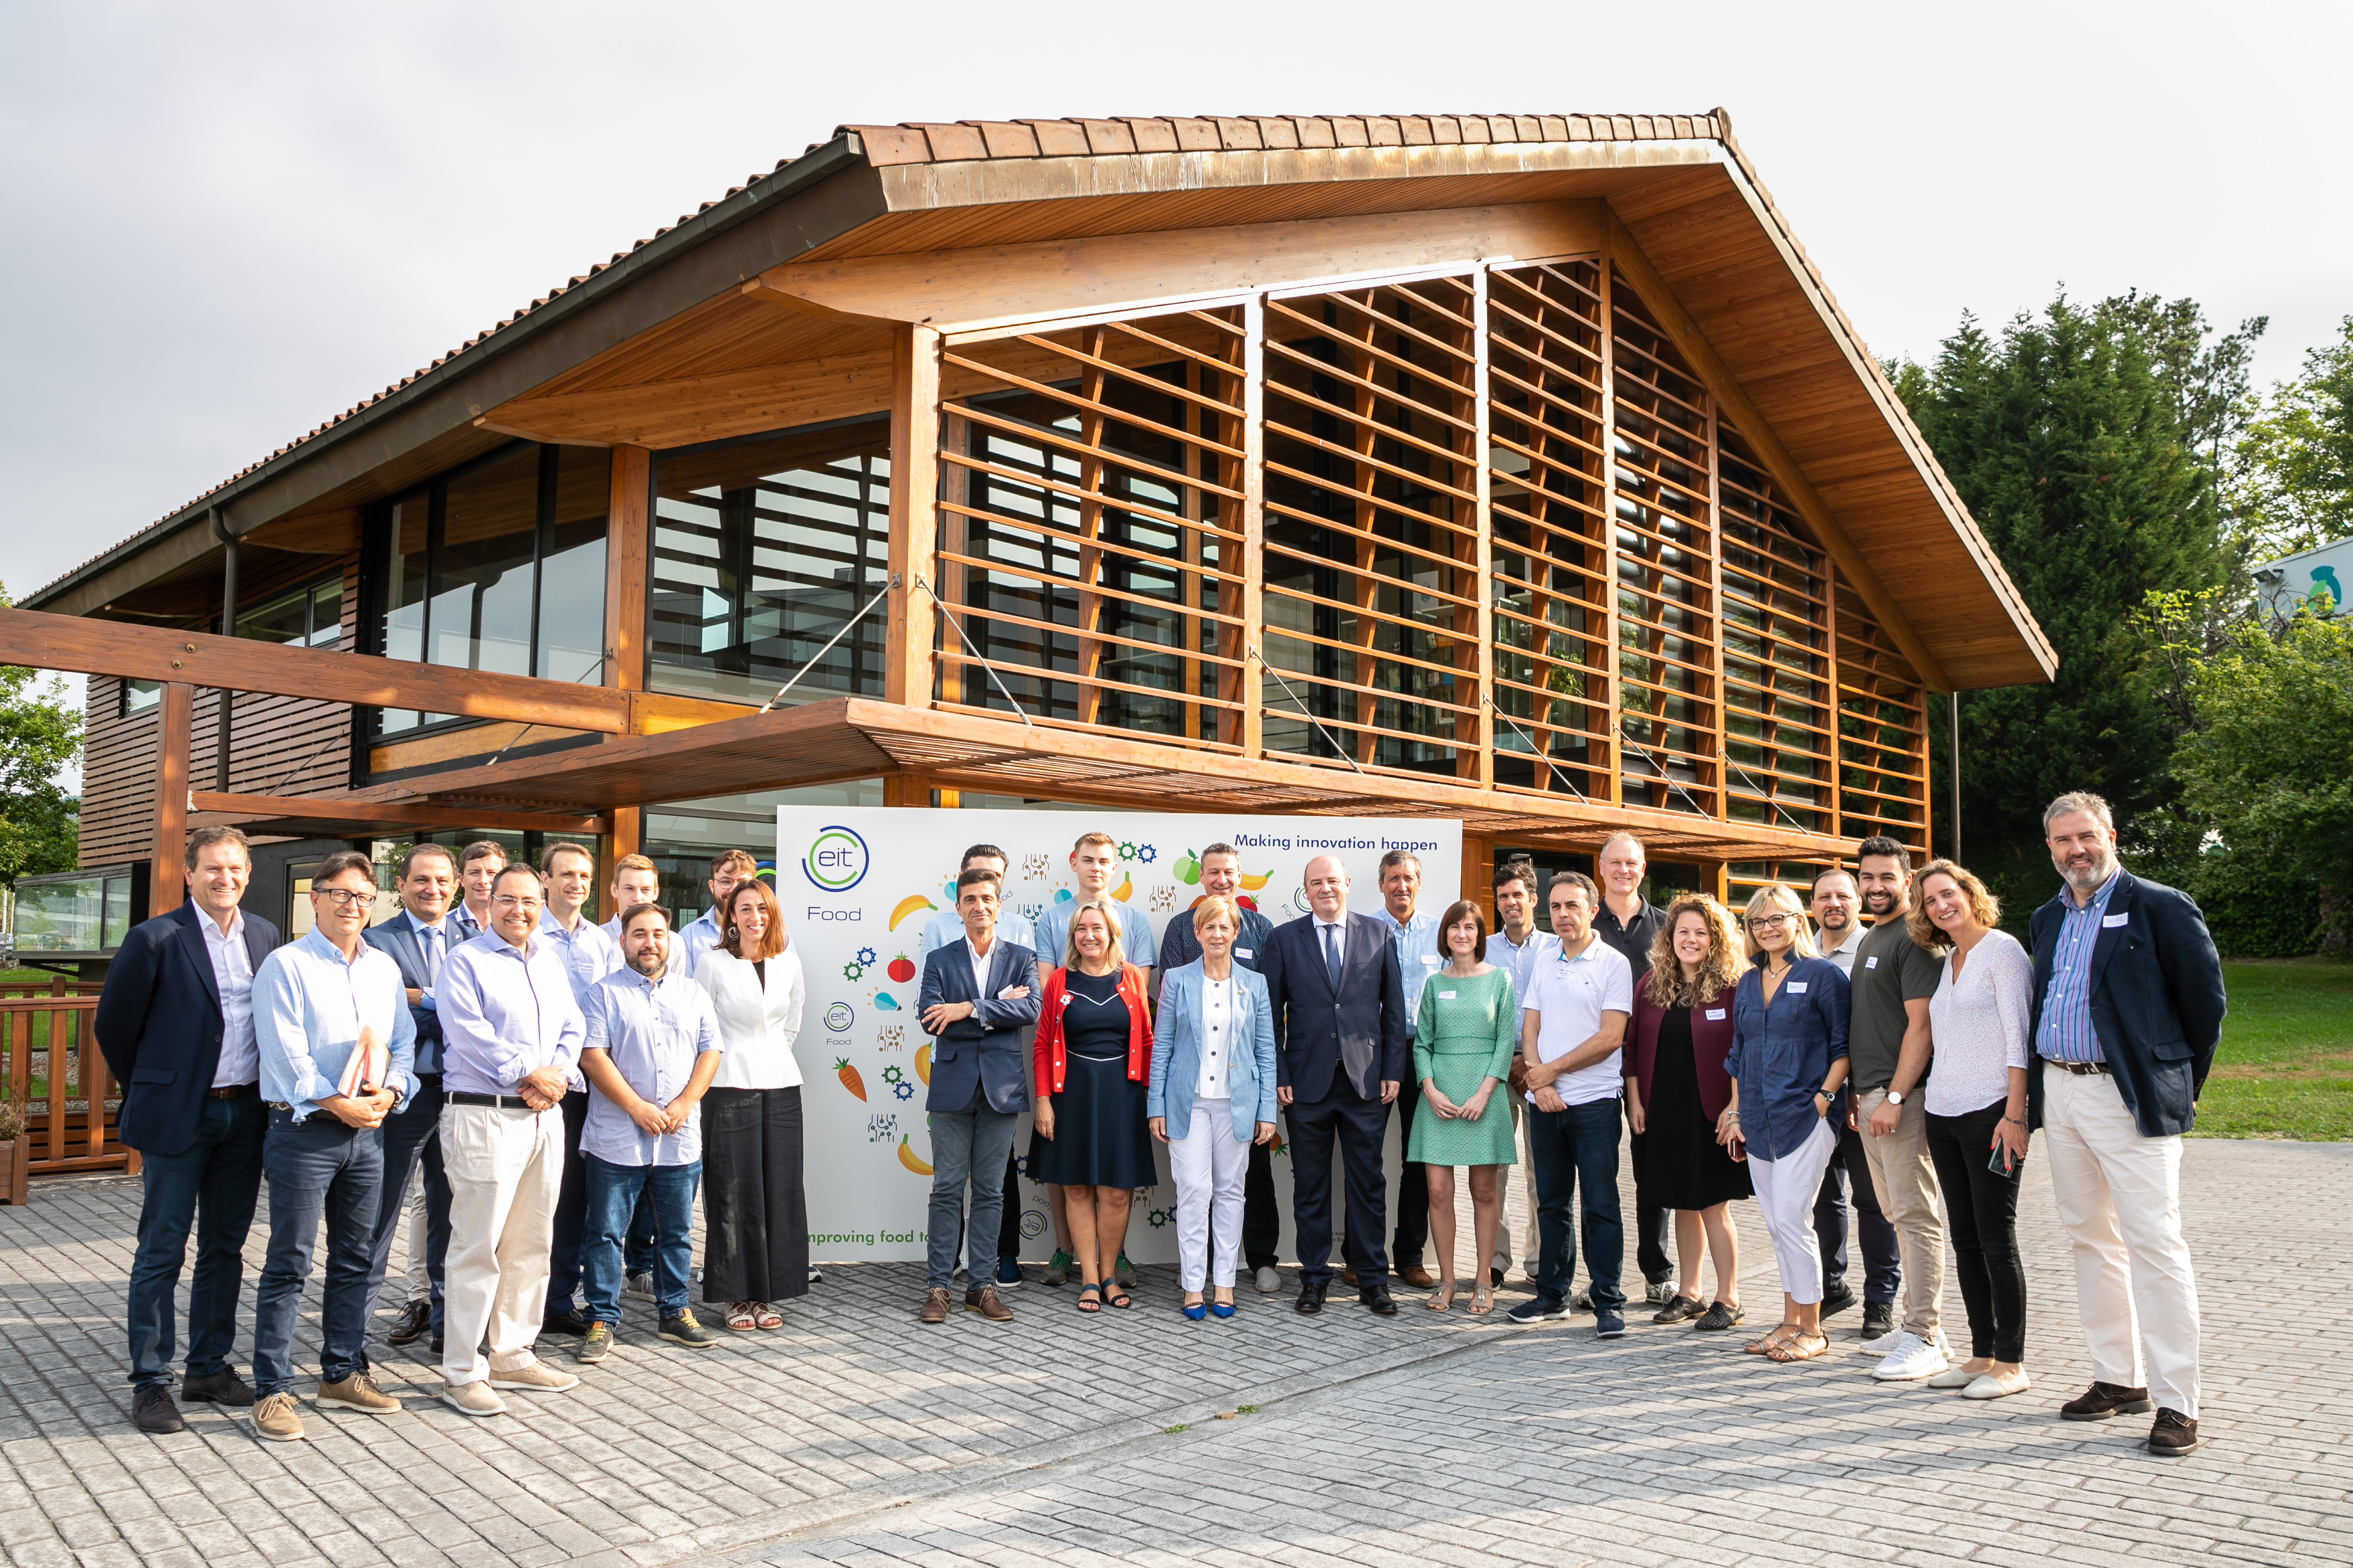 Ten start-ups from various European countries at the EIT FAN in Bilbao